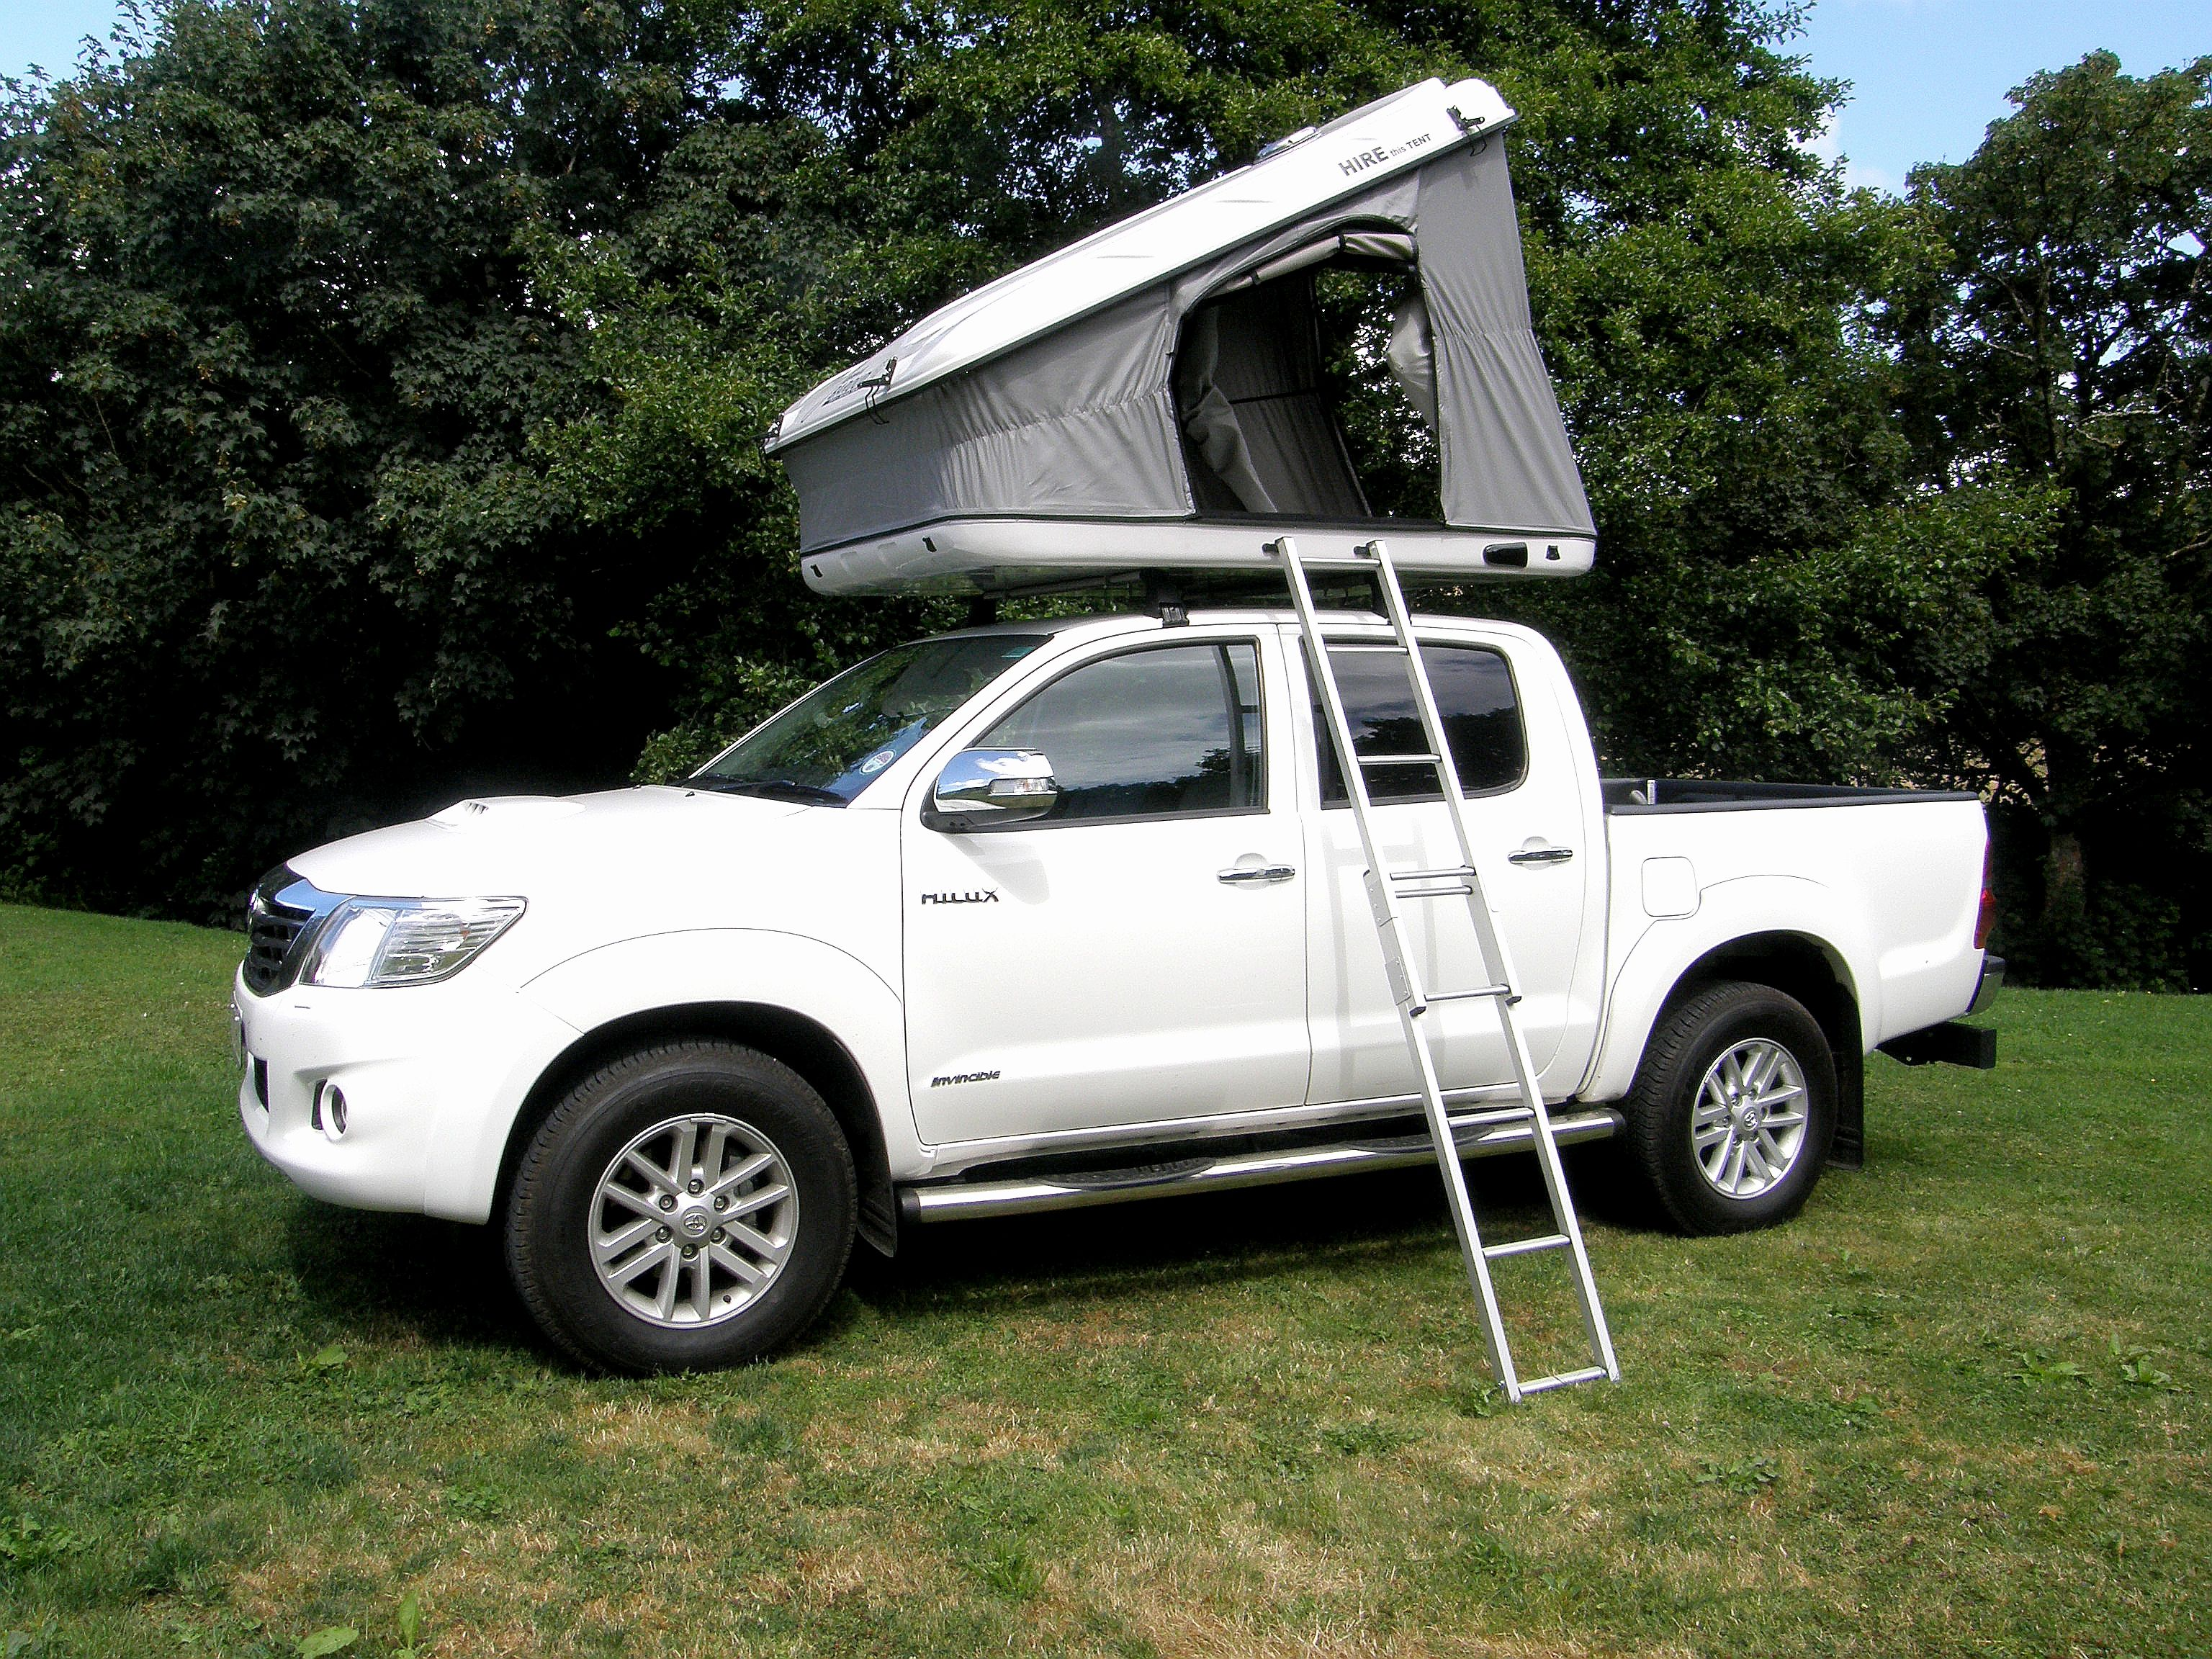 This is the Discovery Space Evolution Tent on top of our brand new Devon 4x4 Toyota Hilux. If you would like more information on this tent please visit ... & This is the Discovery Space Evolution Tent on top of our brand new ...